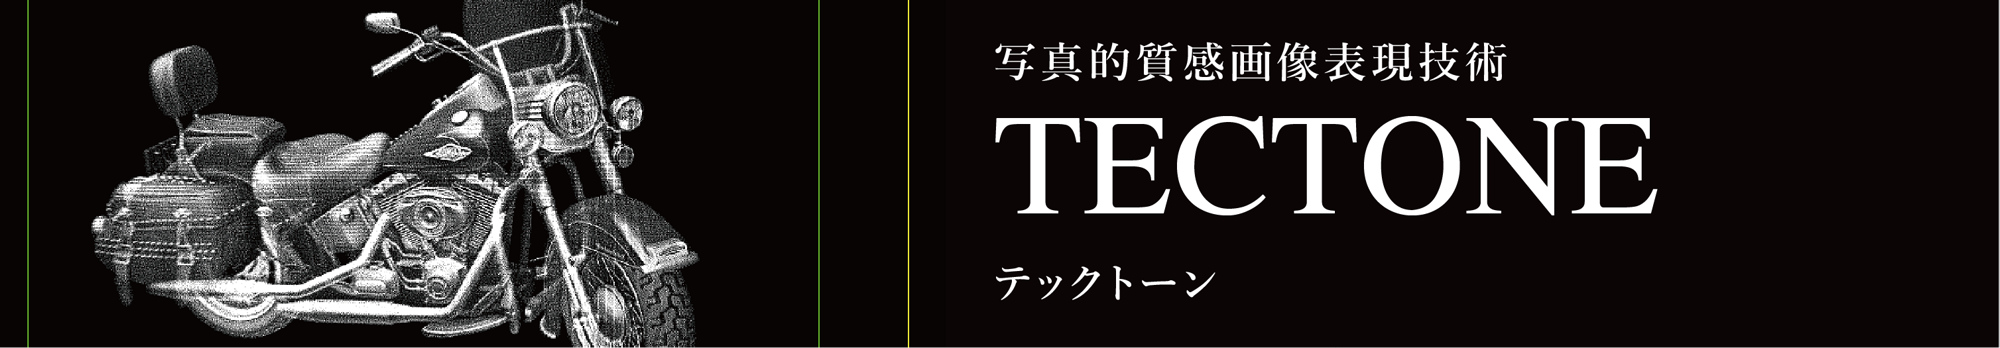 TECTONE (テックトーン)